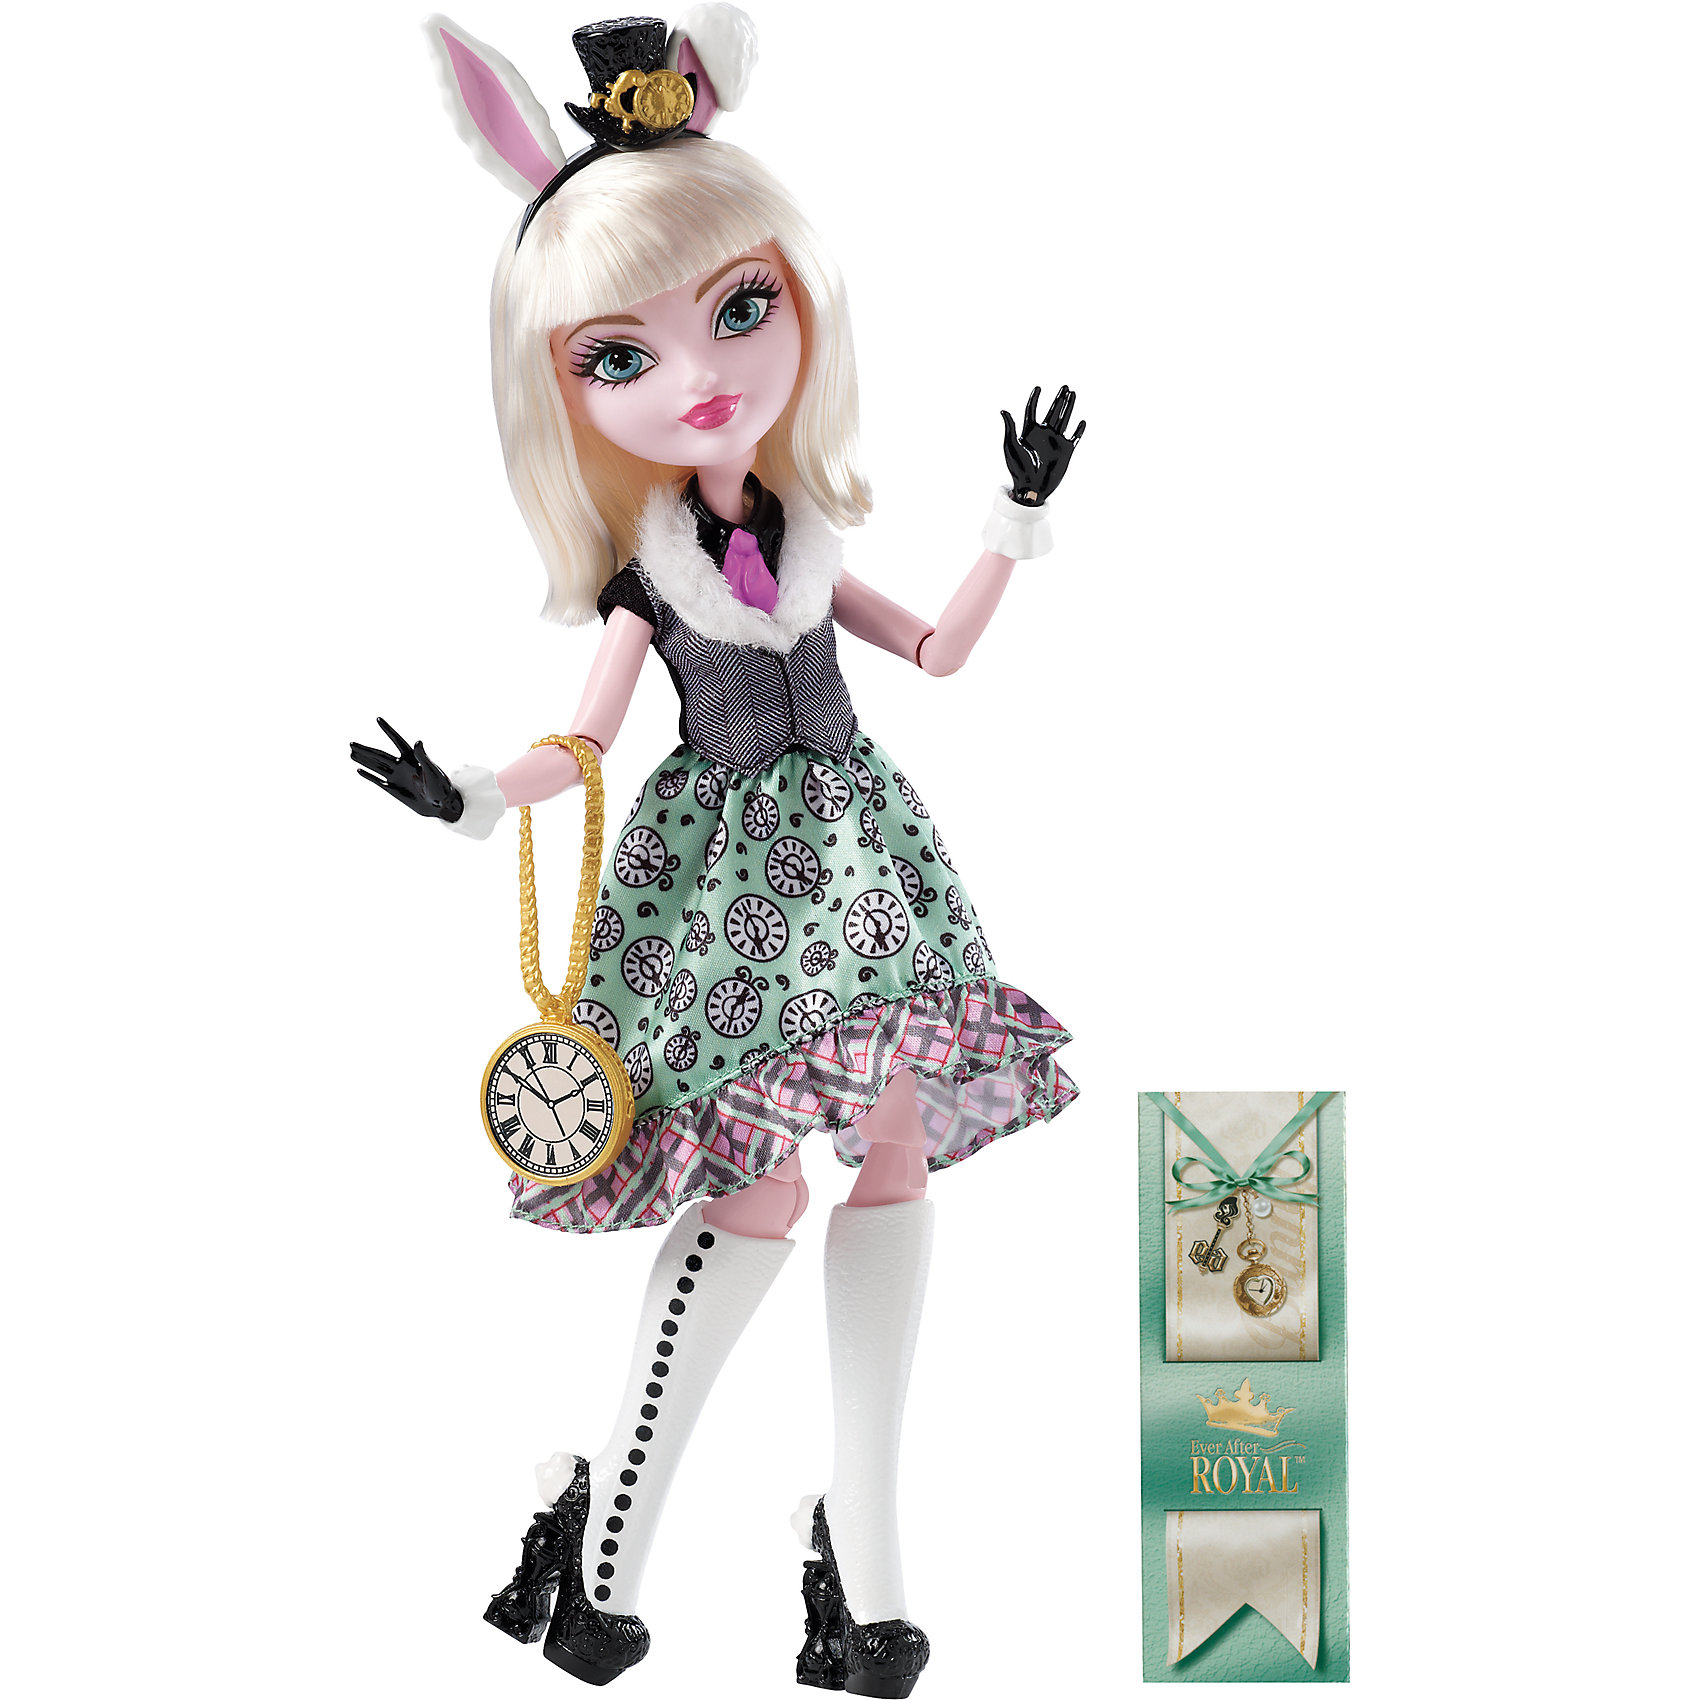 Mattel Кукла Банни Бланк, Ever After High mattel ever after high bbd44 чериз худ